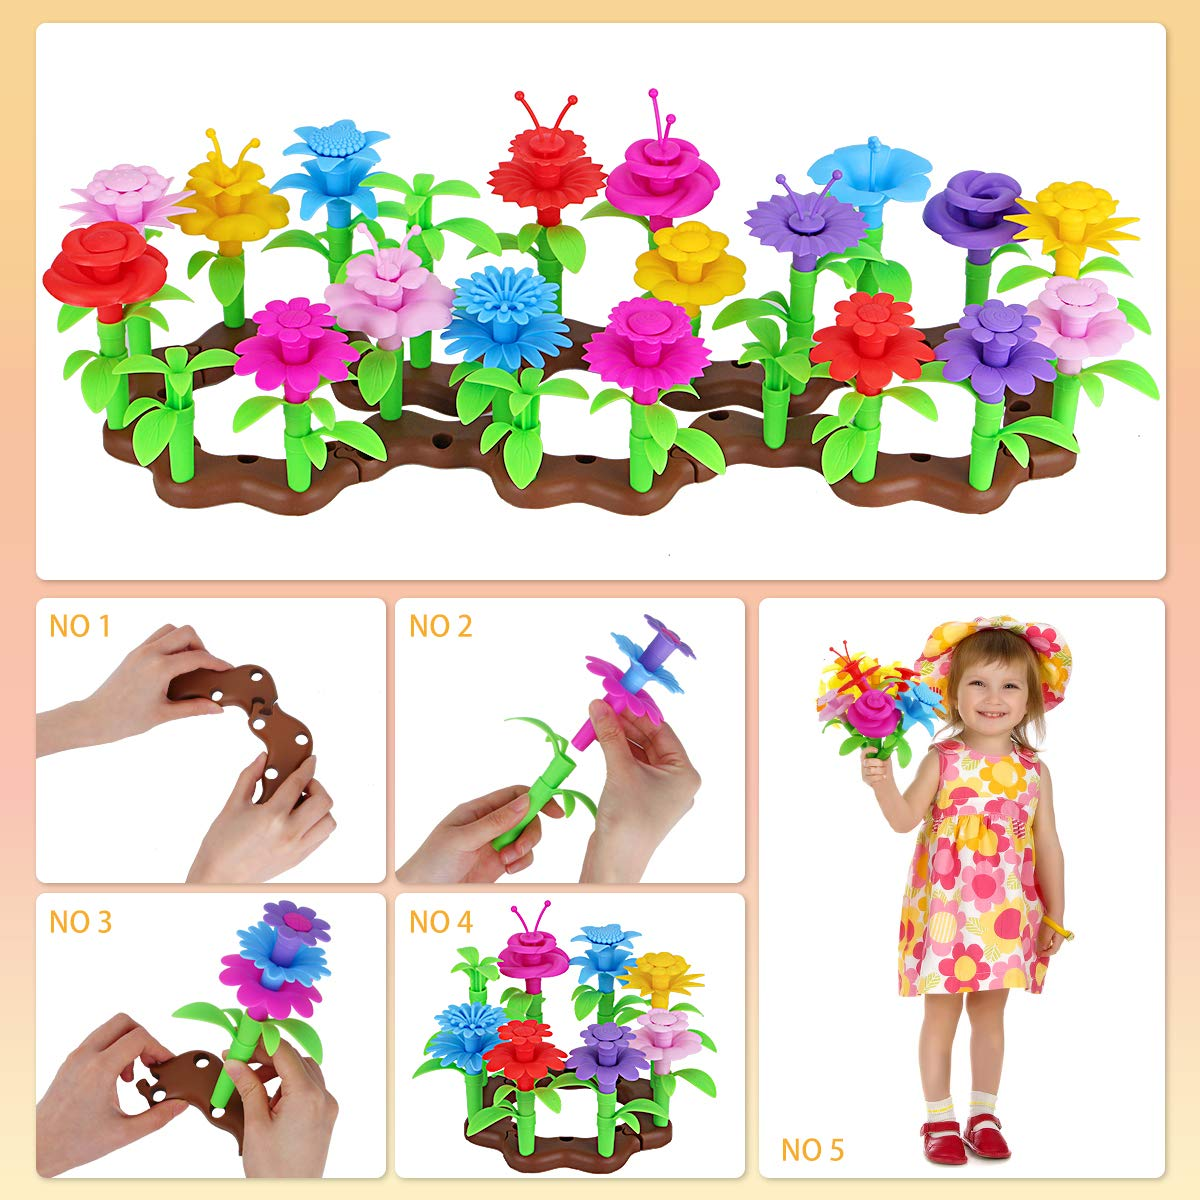 Aitey Flower Garden Building Toys for Girls Stacking STEM Educational Arts and Crafts Playset 108 Pack Kid Gardening Set with 4 Wind-Up Toys for 3 4 6 Year Old Toddler Birthday Gifts 5